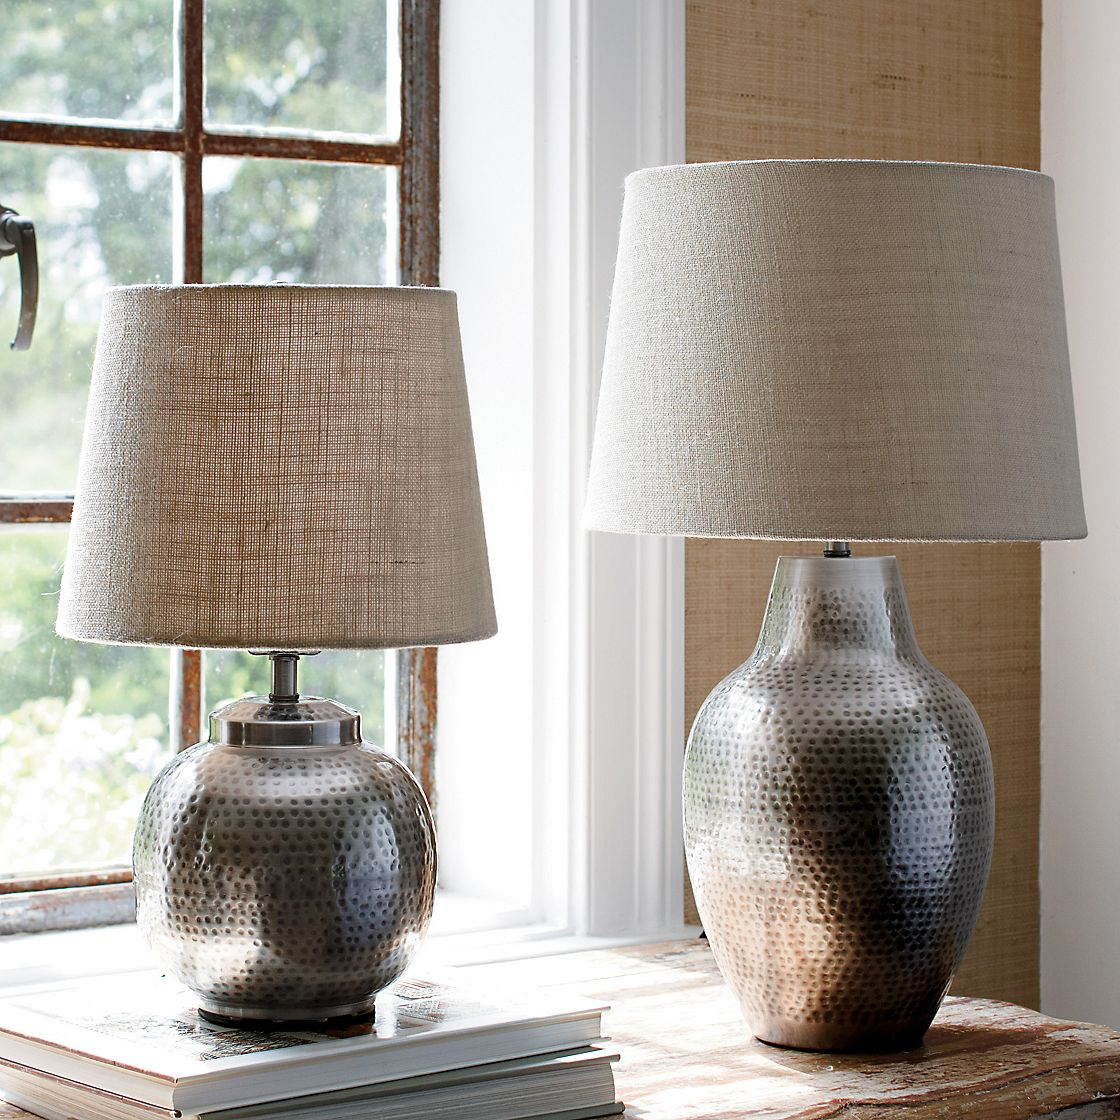 10 adventiges of Small accent table lamps  Warisan Lighting